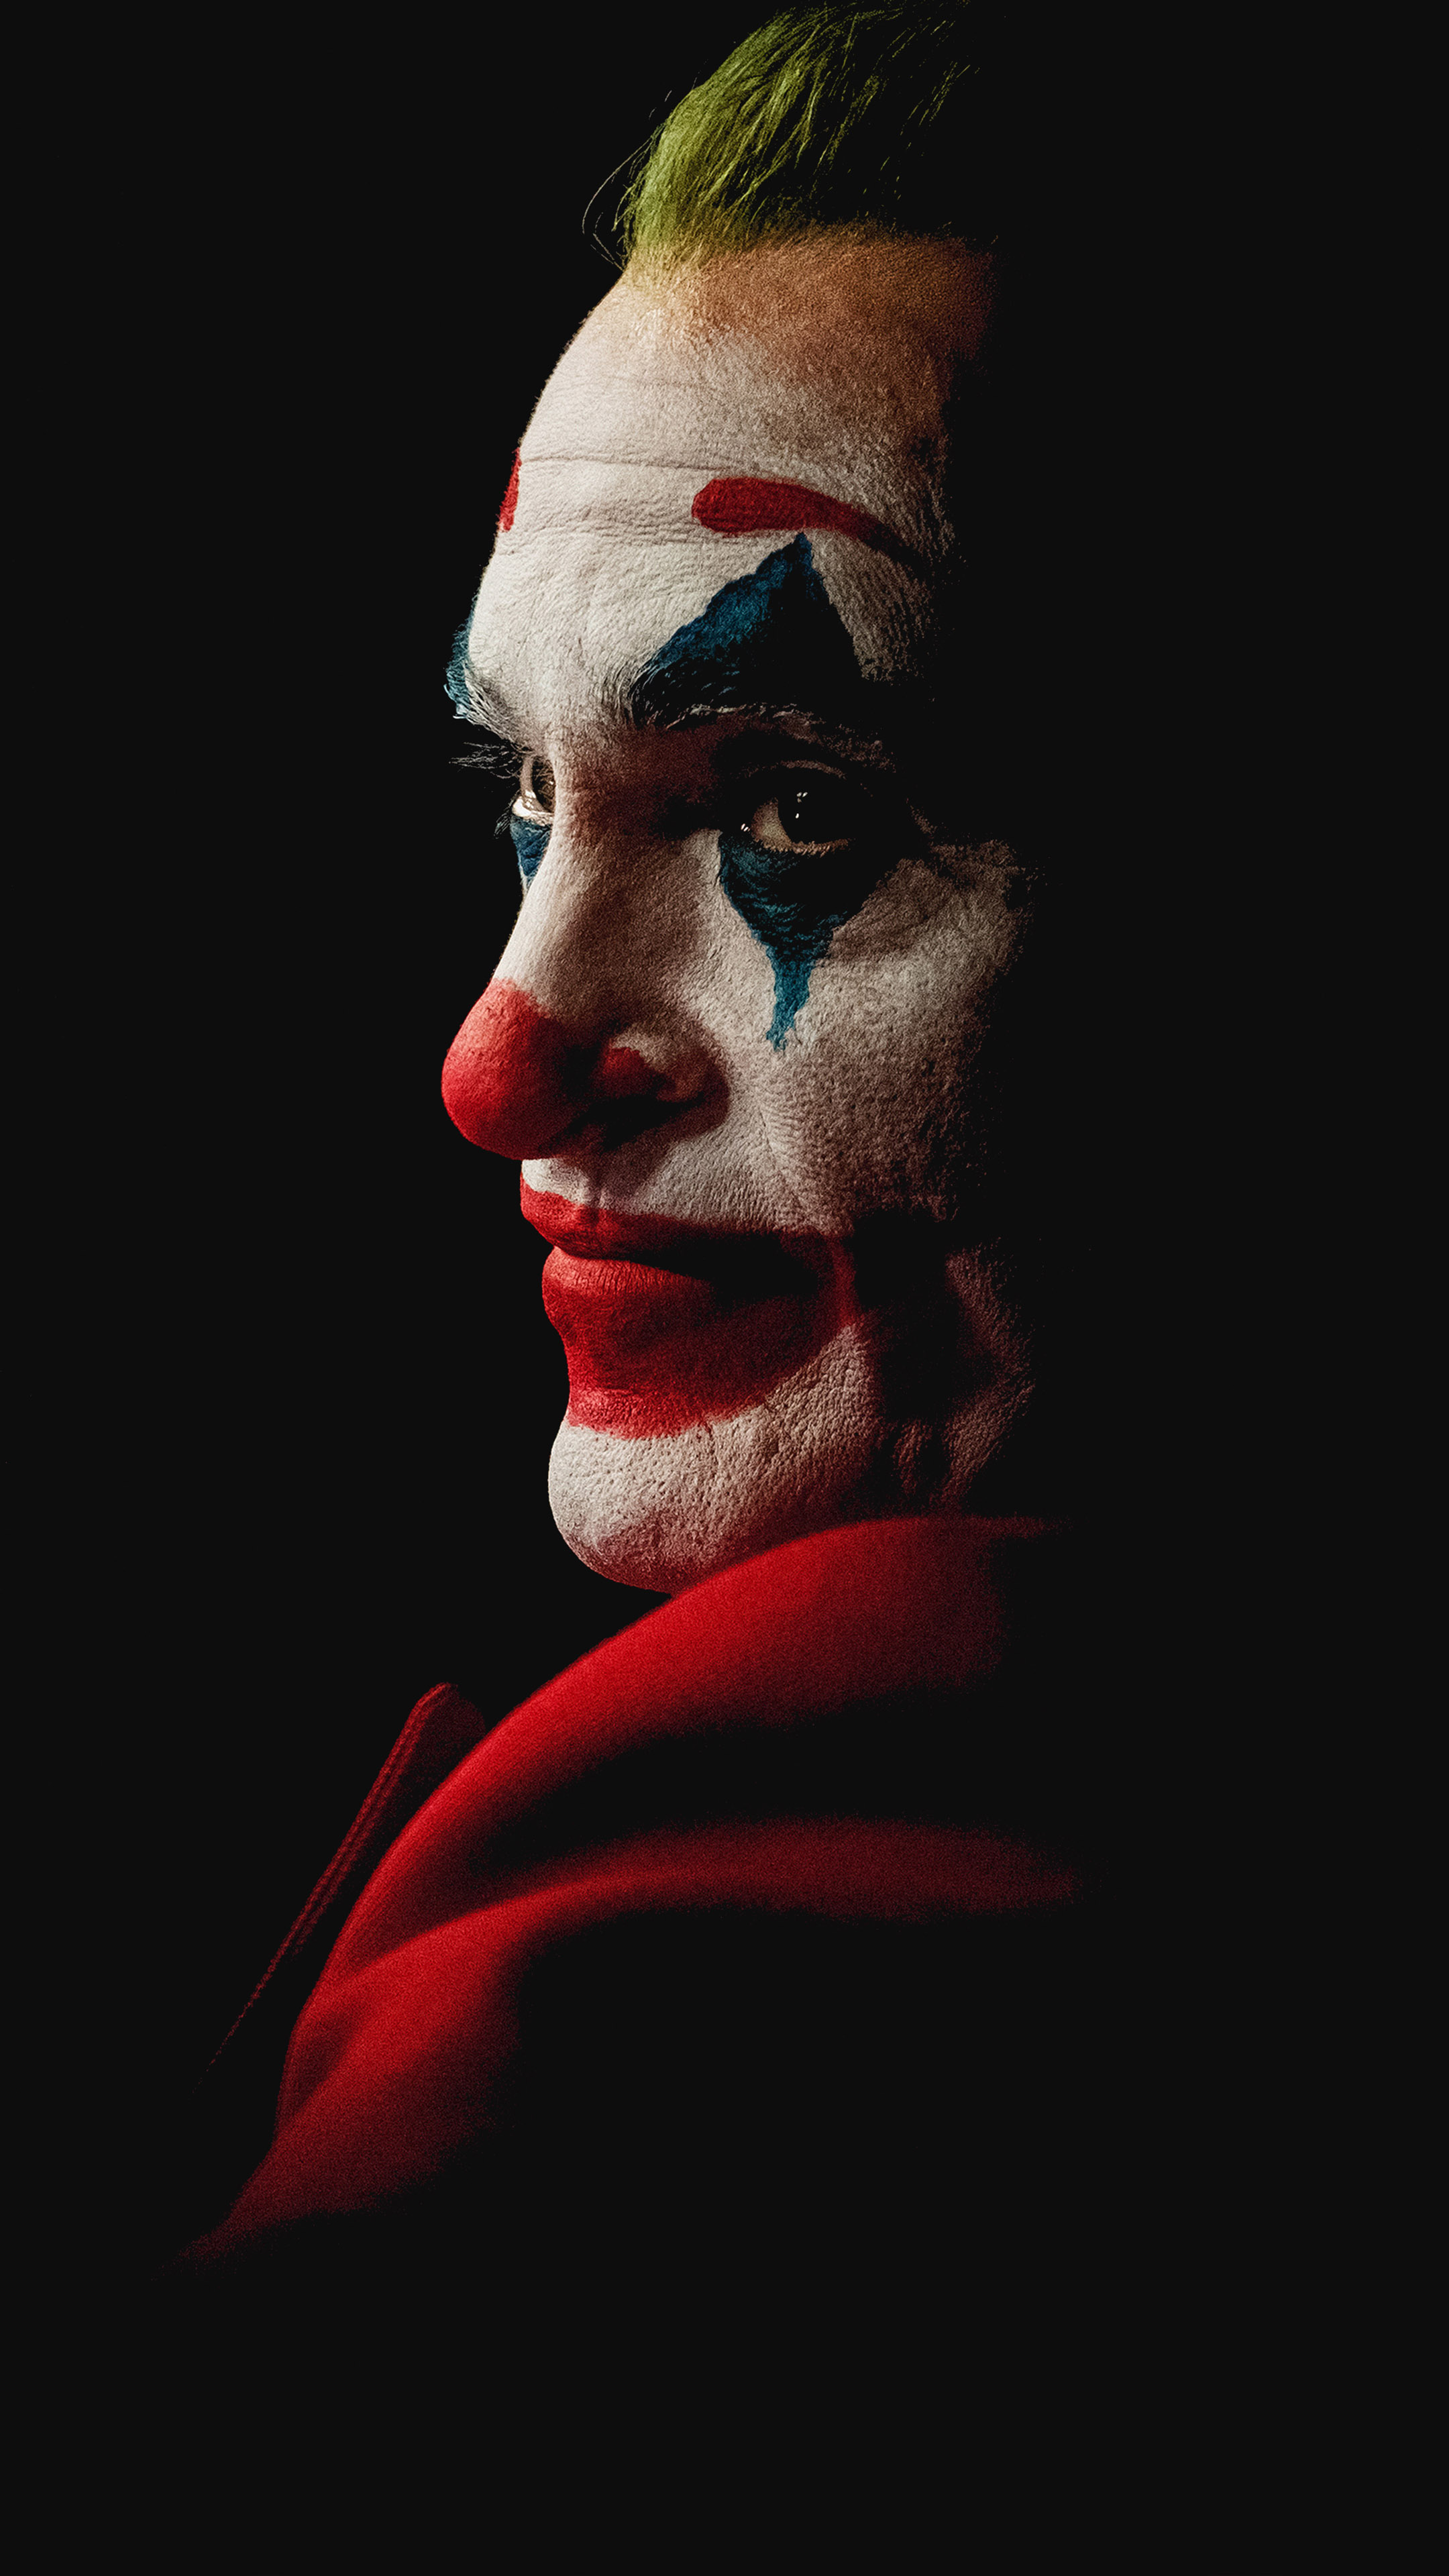 Joaquin Phoenix Joker Black Background 4k Ultra Hd Mobile Wallpaper